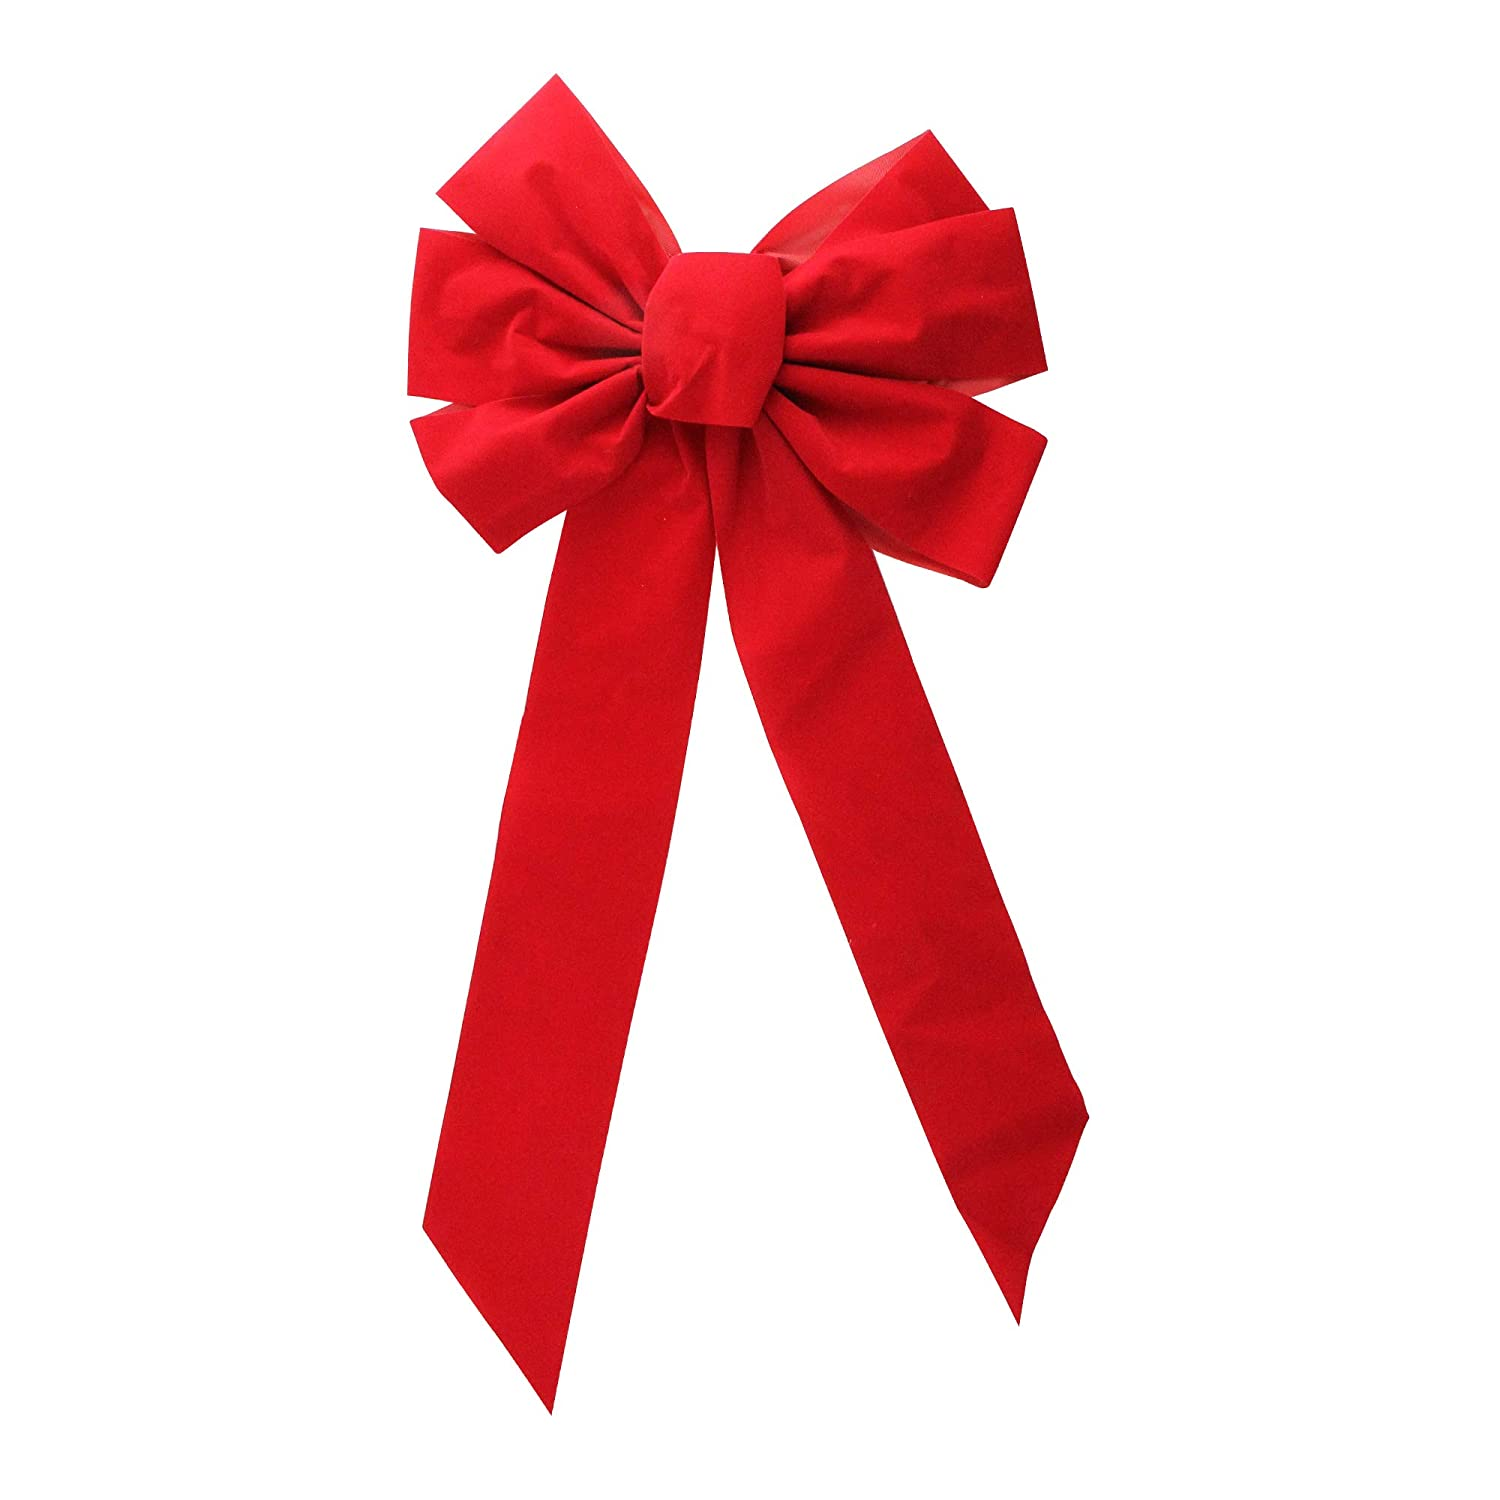 12 x 26 Large Red Indoor/Outdoor Velveteen Magnetic Christmas Holiday Bow CC Christmas Decor